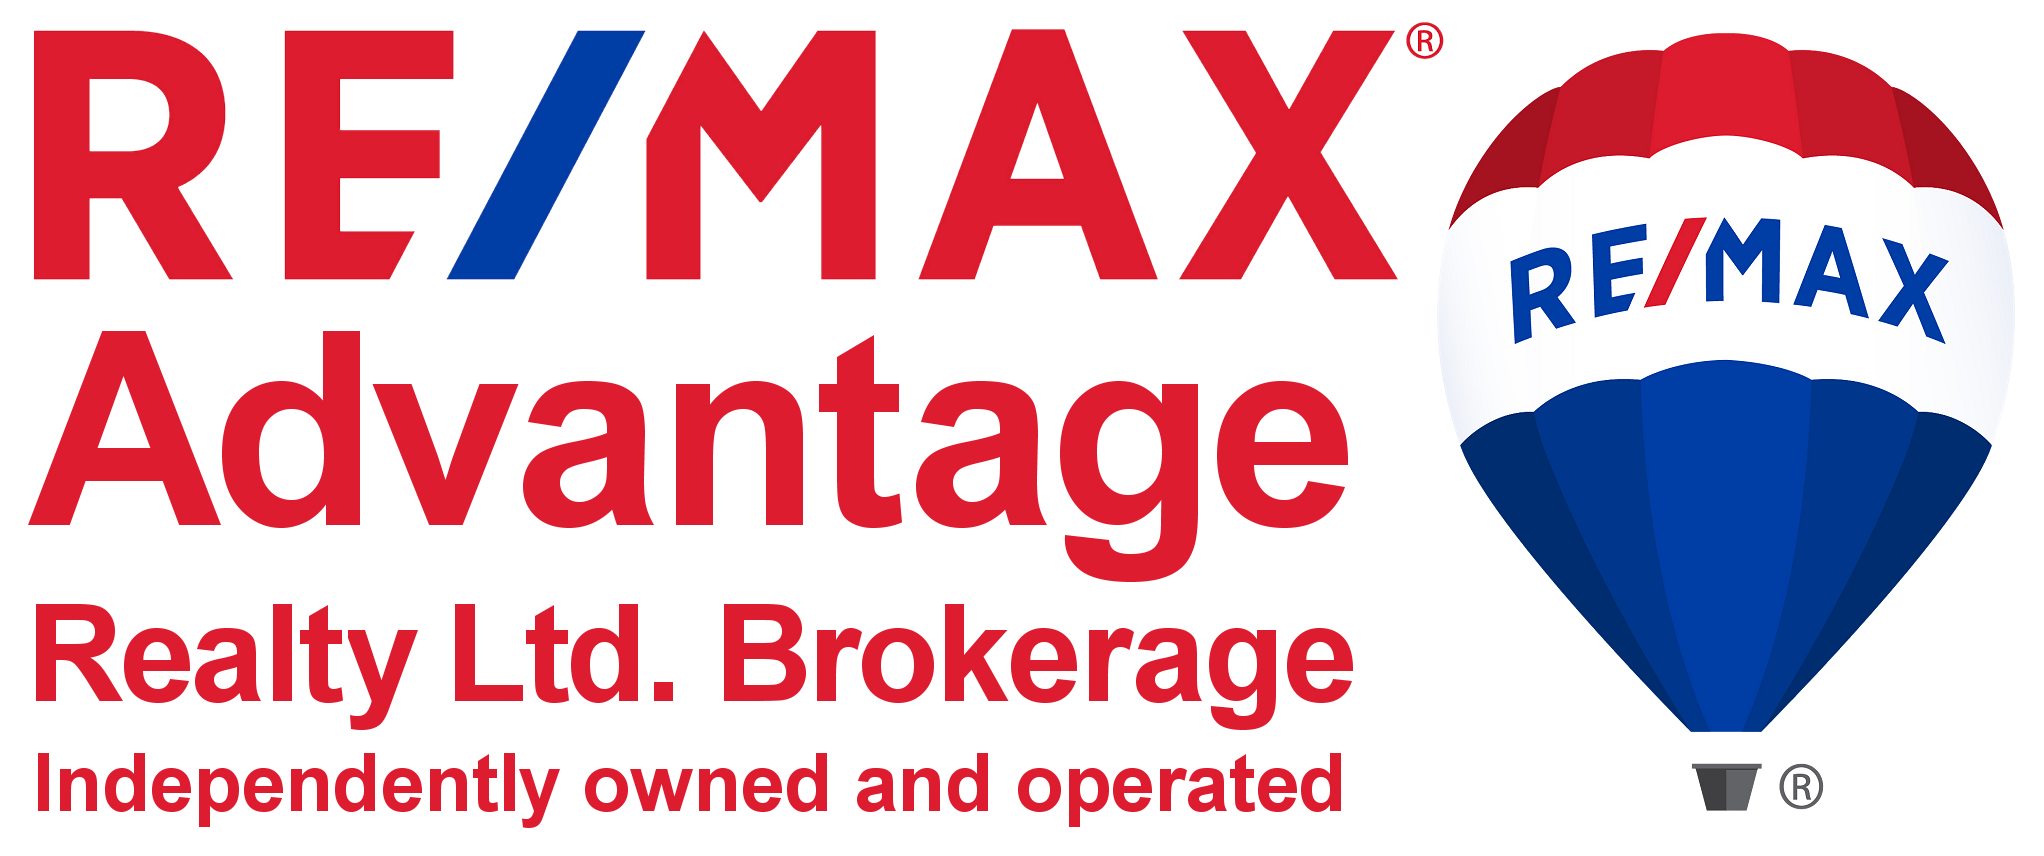 RE/MAX Advantage Realty Ltd., Brokerage*